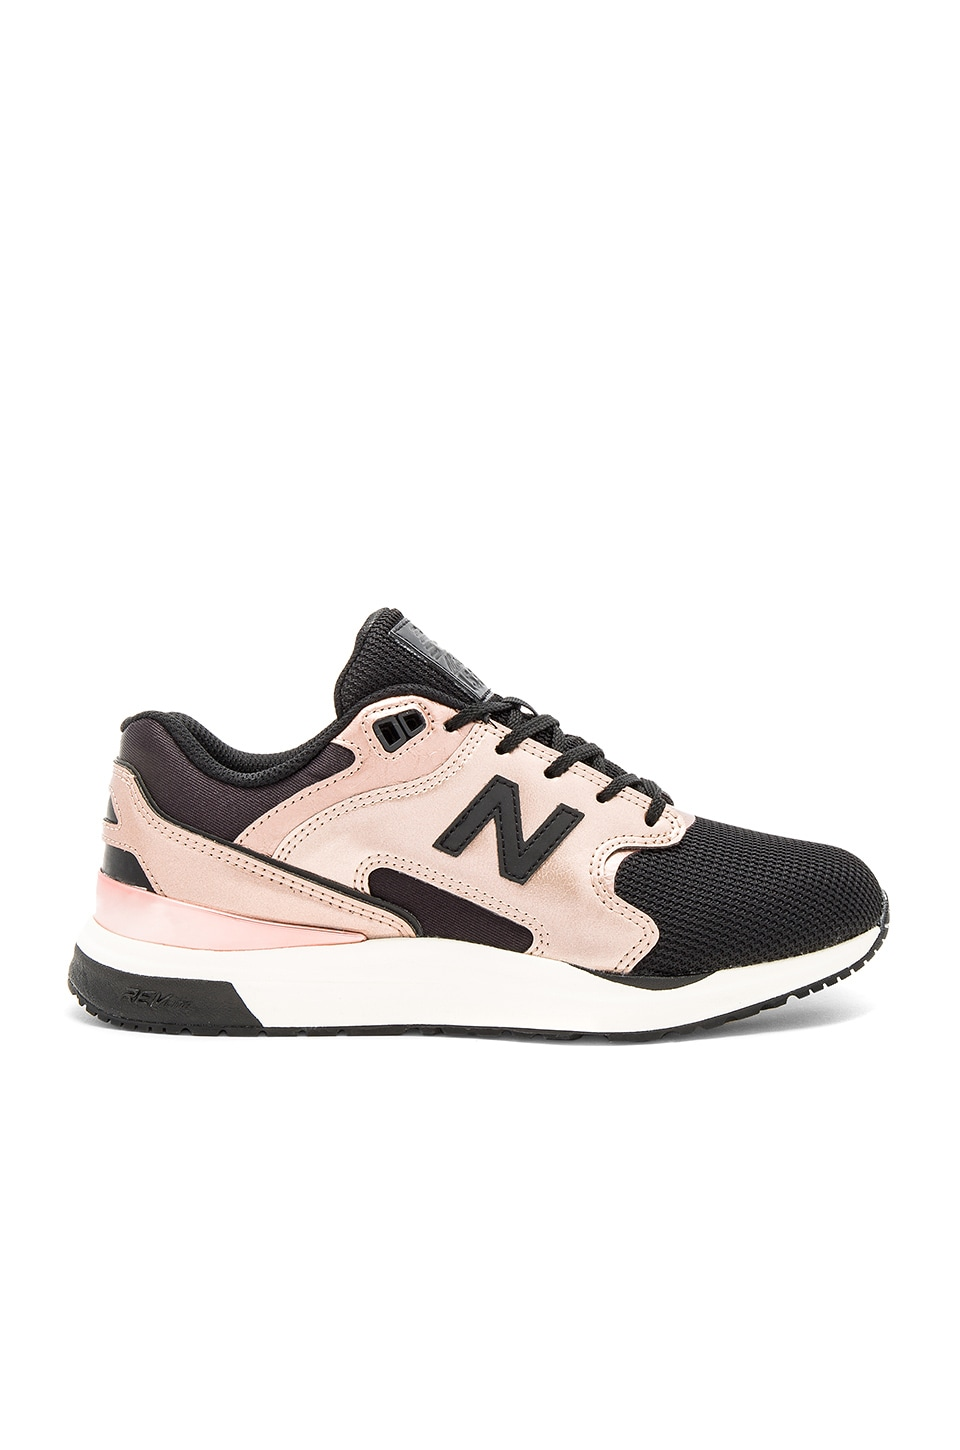 New Balance New Classics Sneaker in Metallic Rose & Black